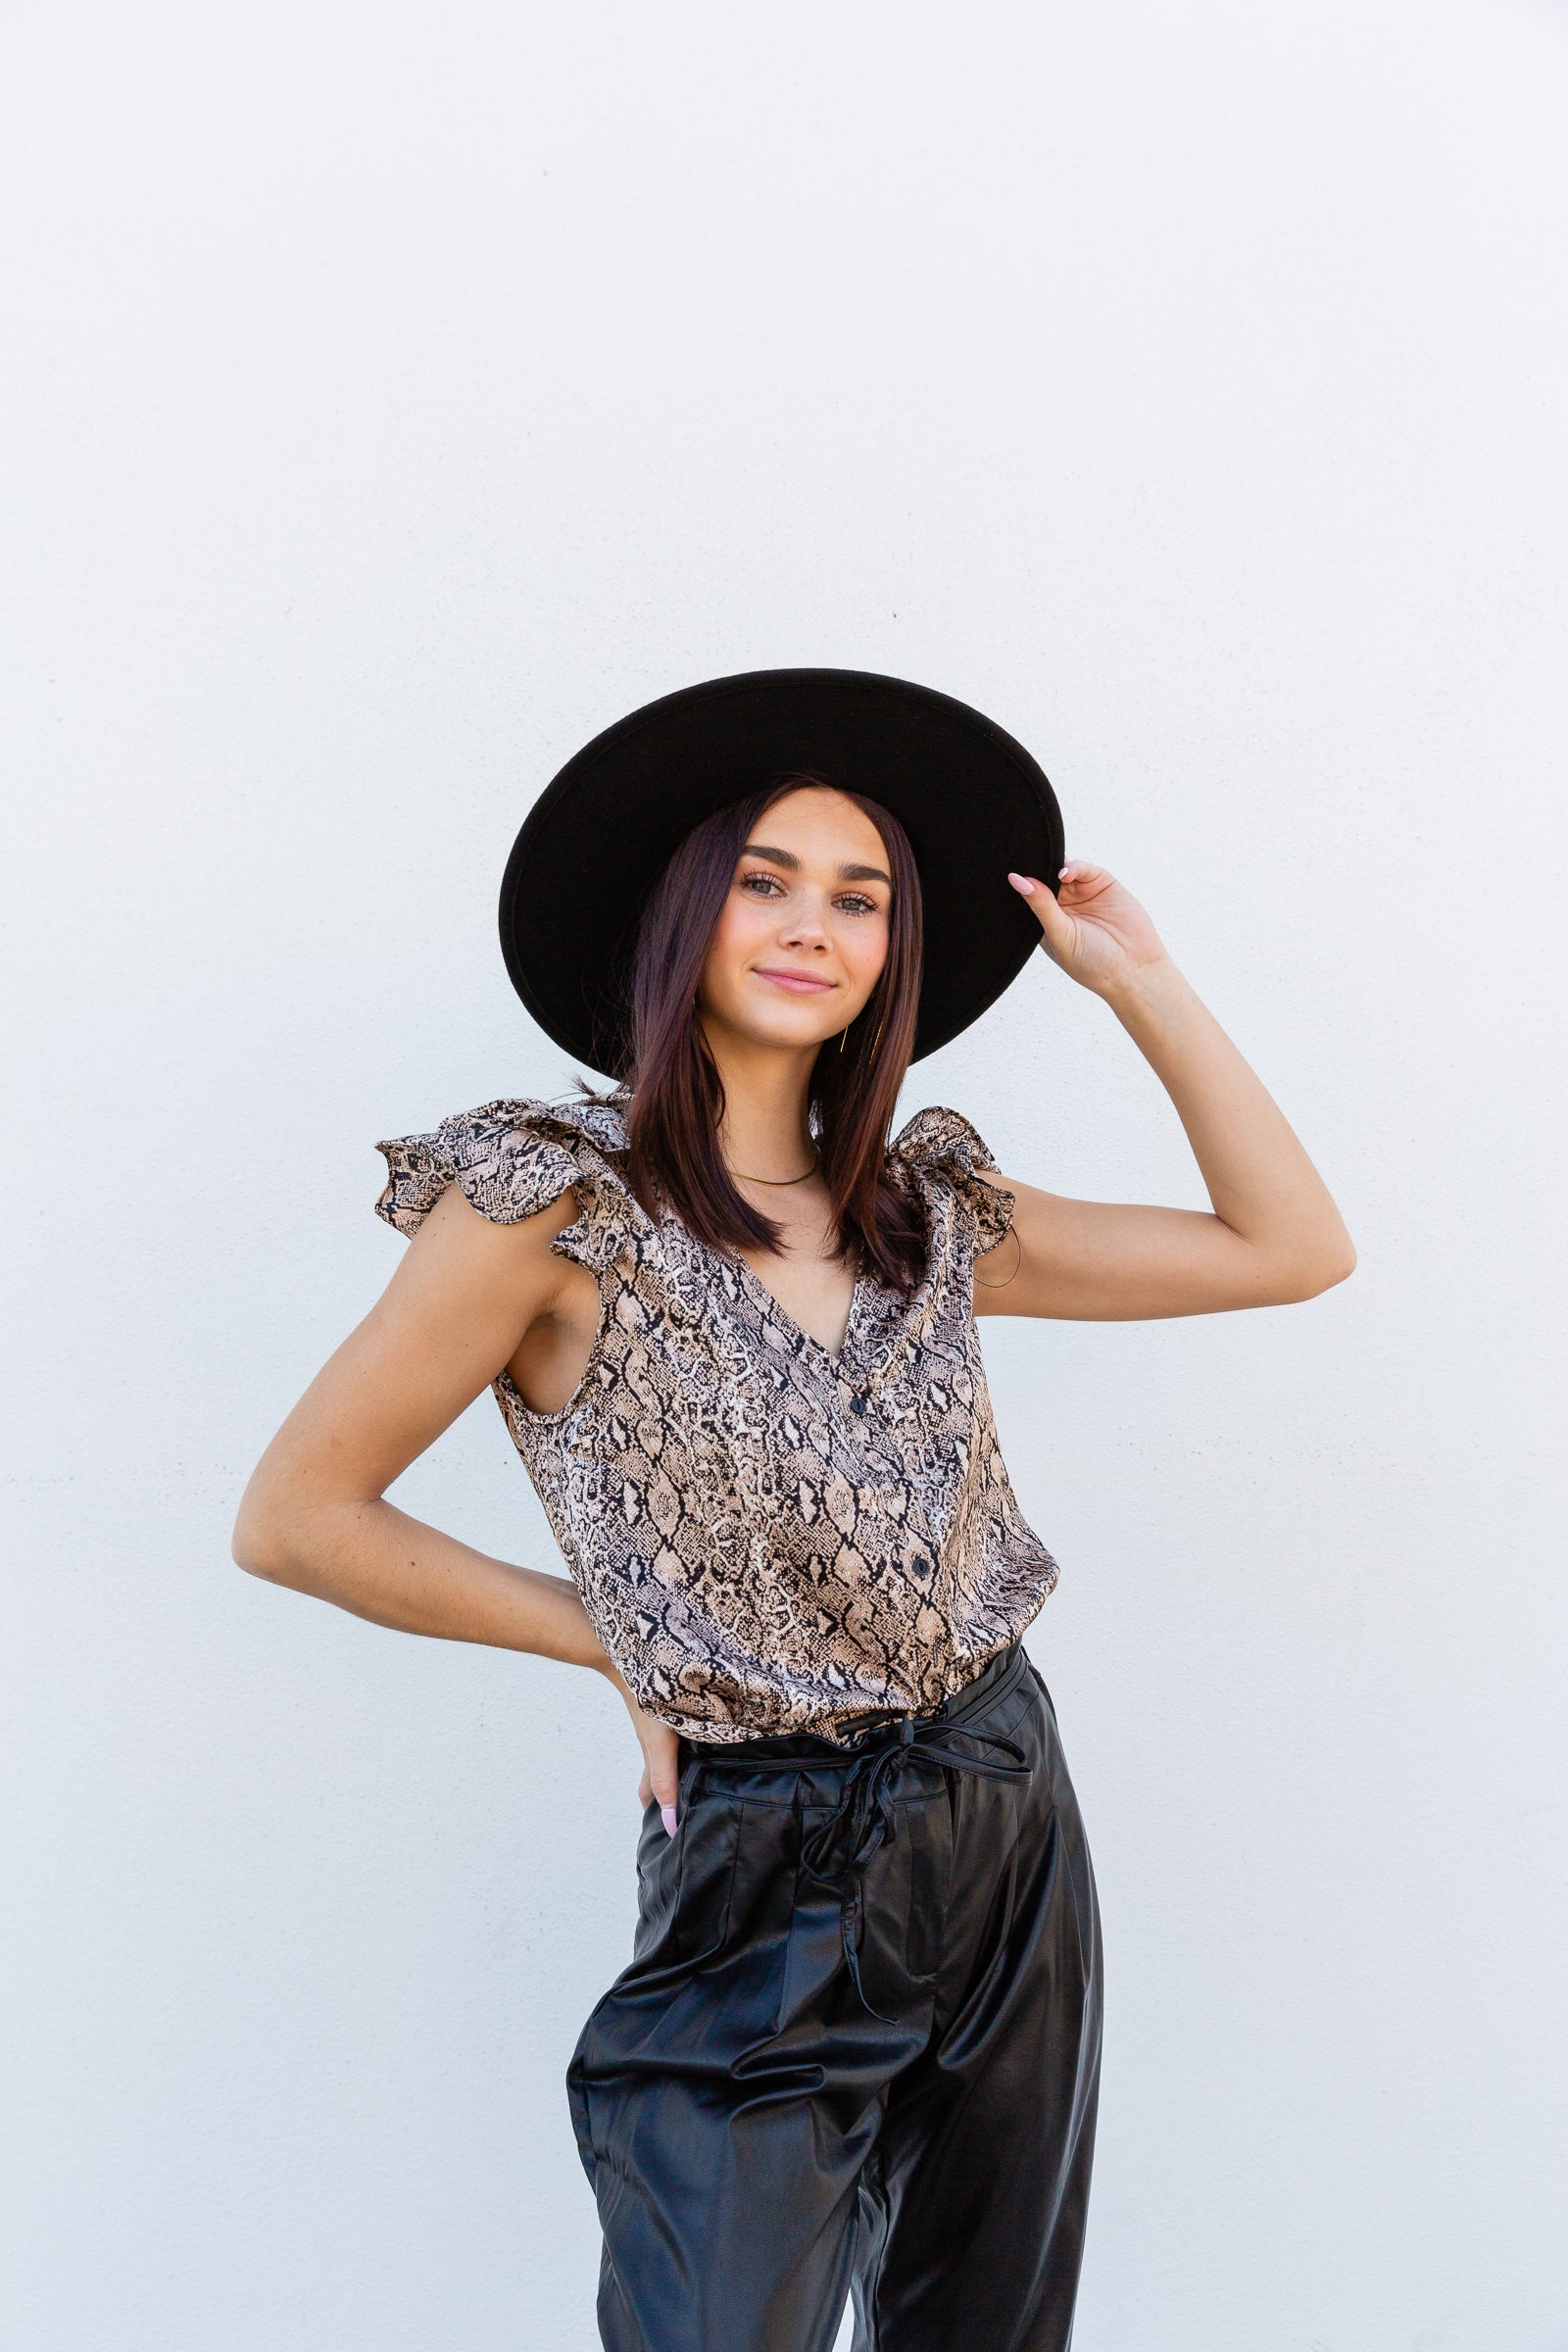 Black and tan snake prints cover the fabric of this lightweight top. It has short flutter sleeves that attach to a v-neckline on a relaxed button-down bodice silhouette.